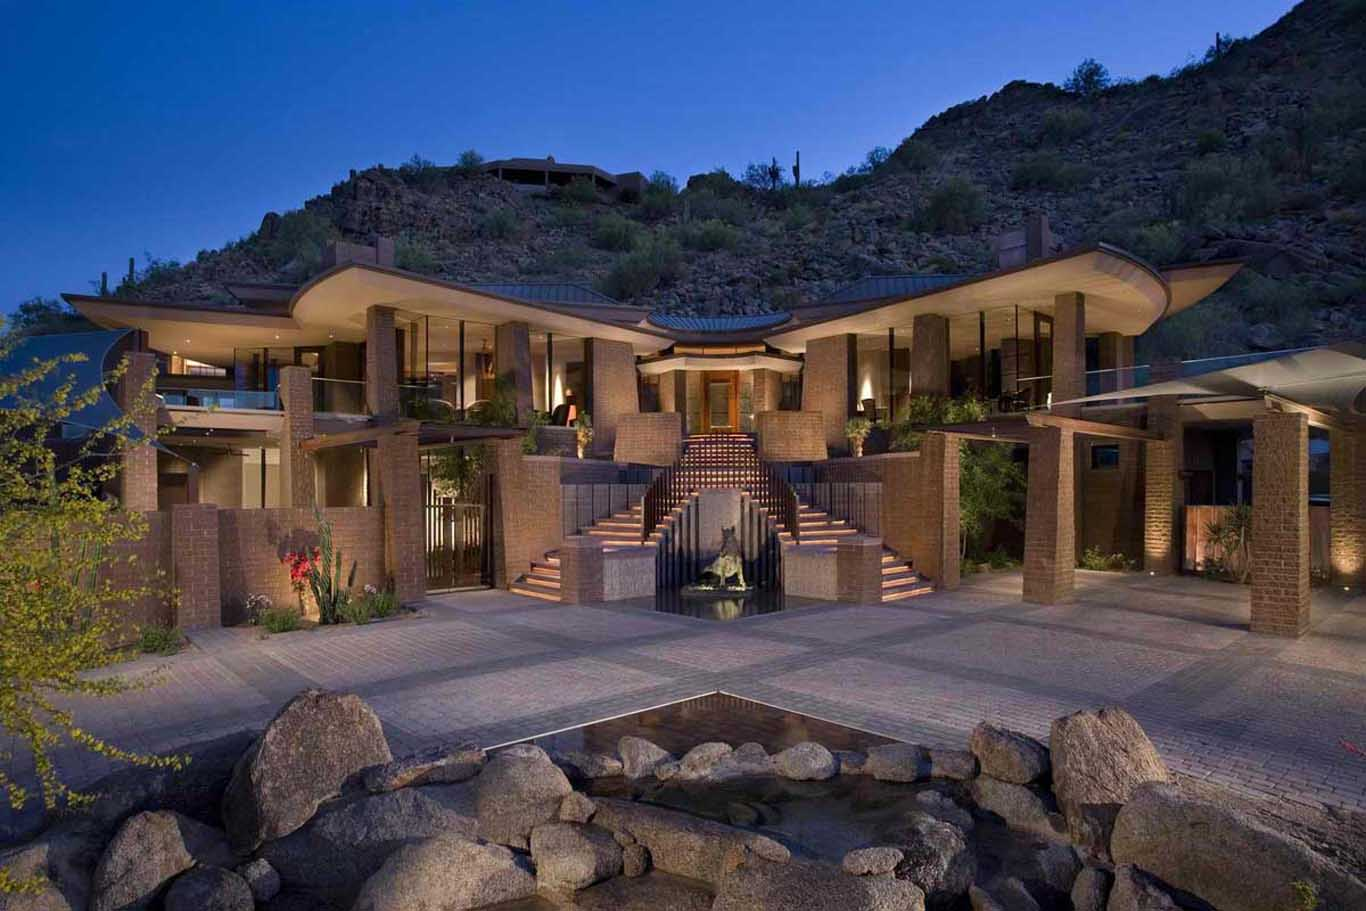 Arizona - Architecture - 1